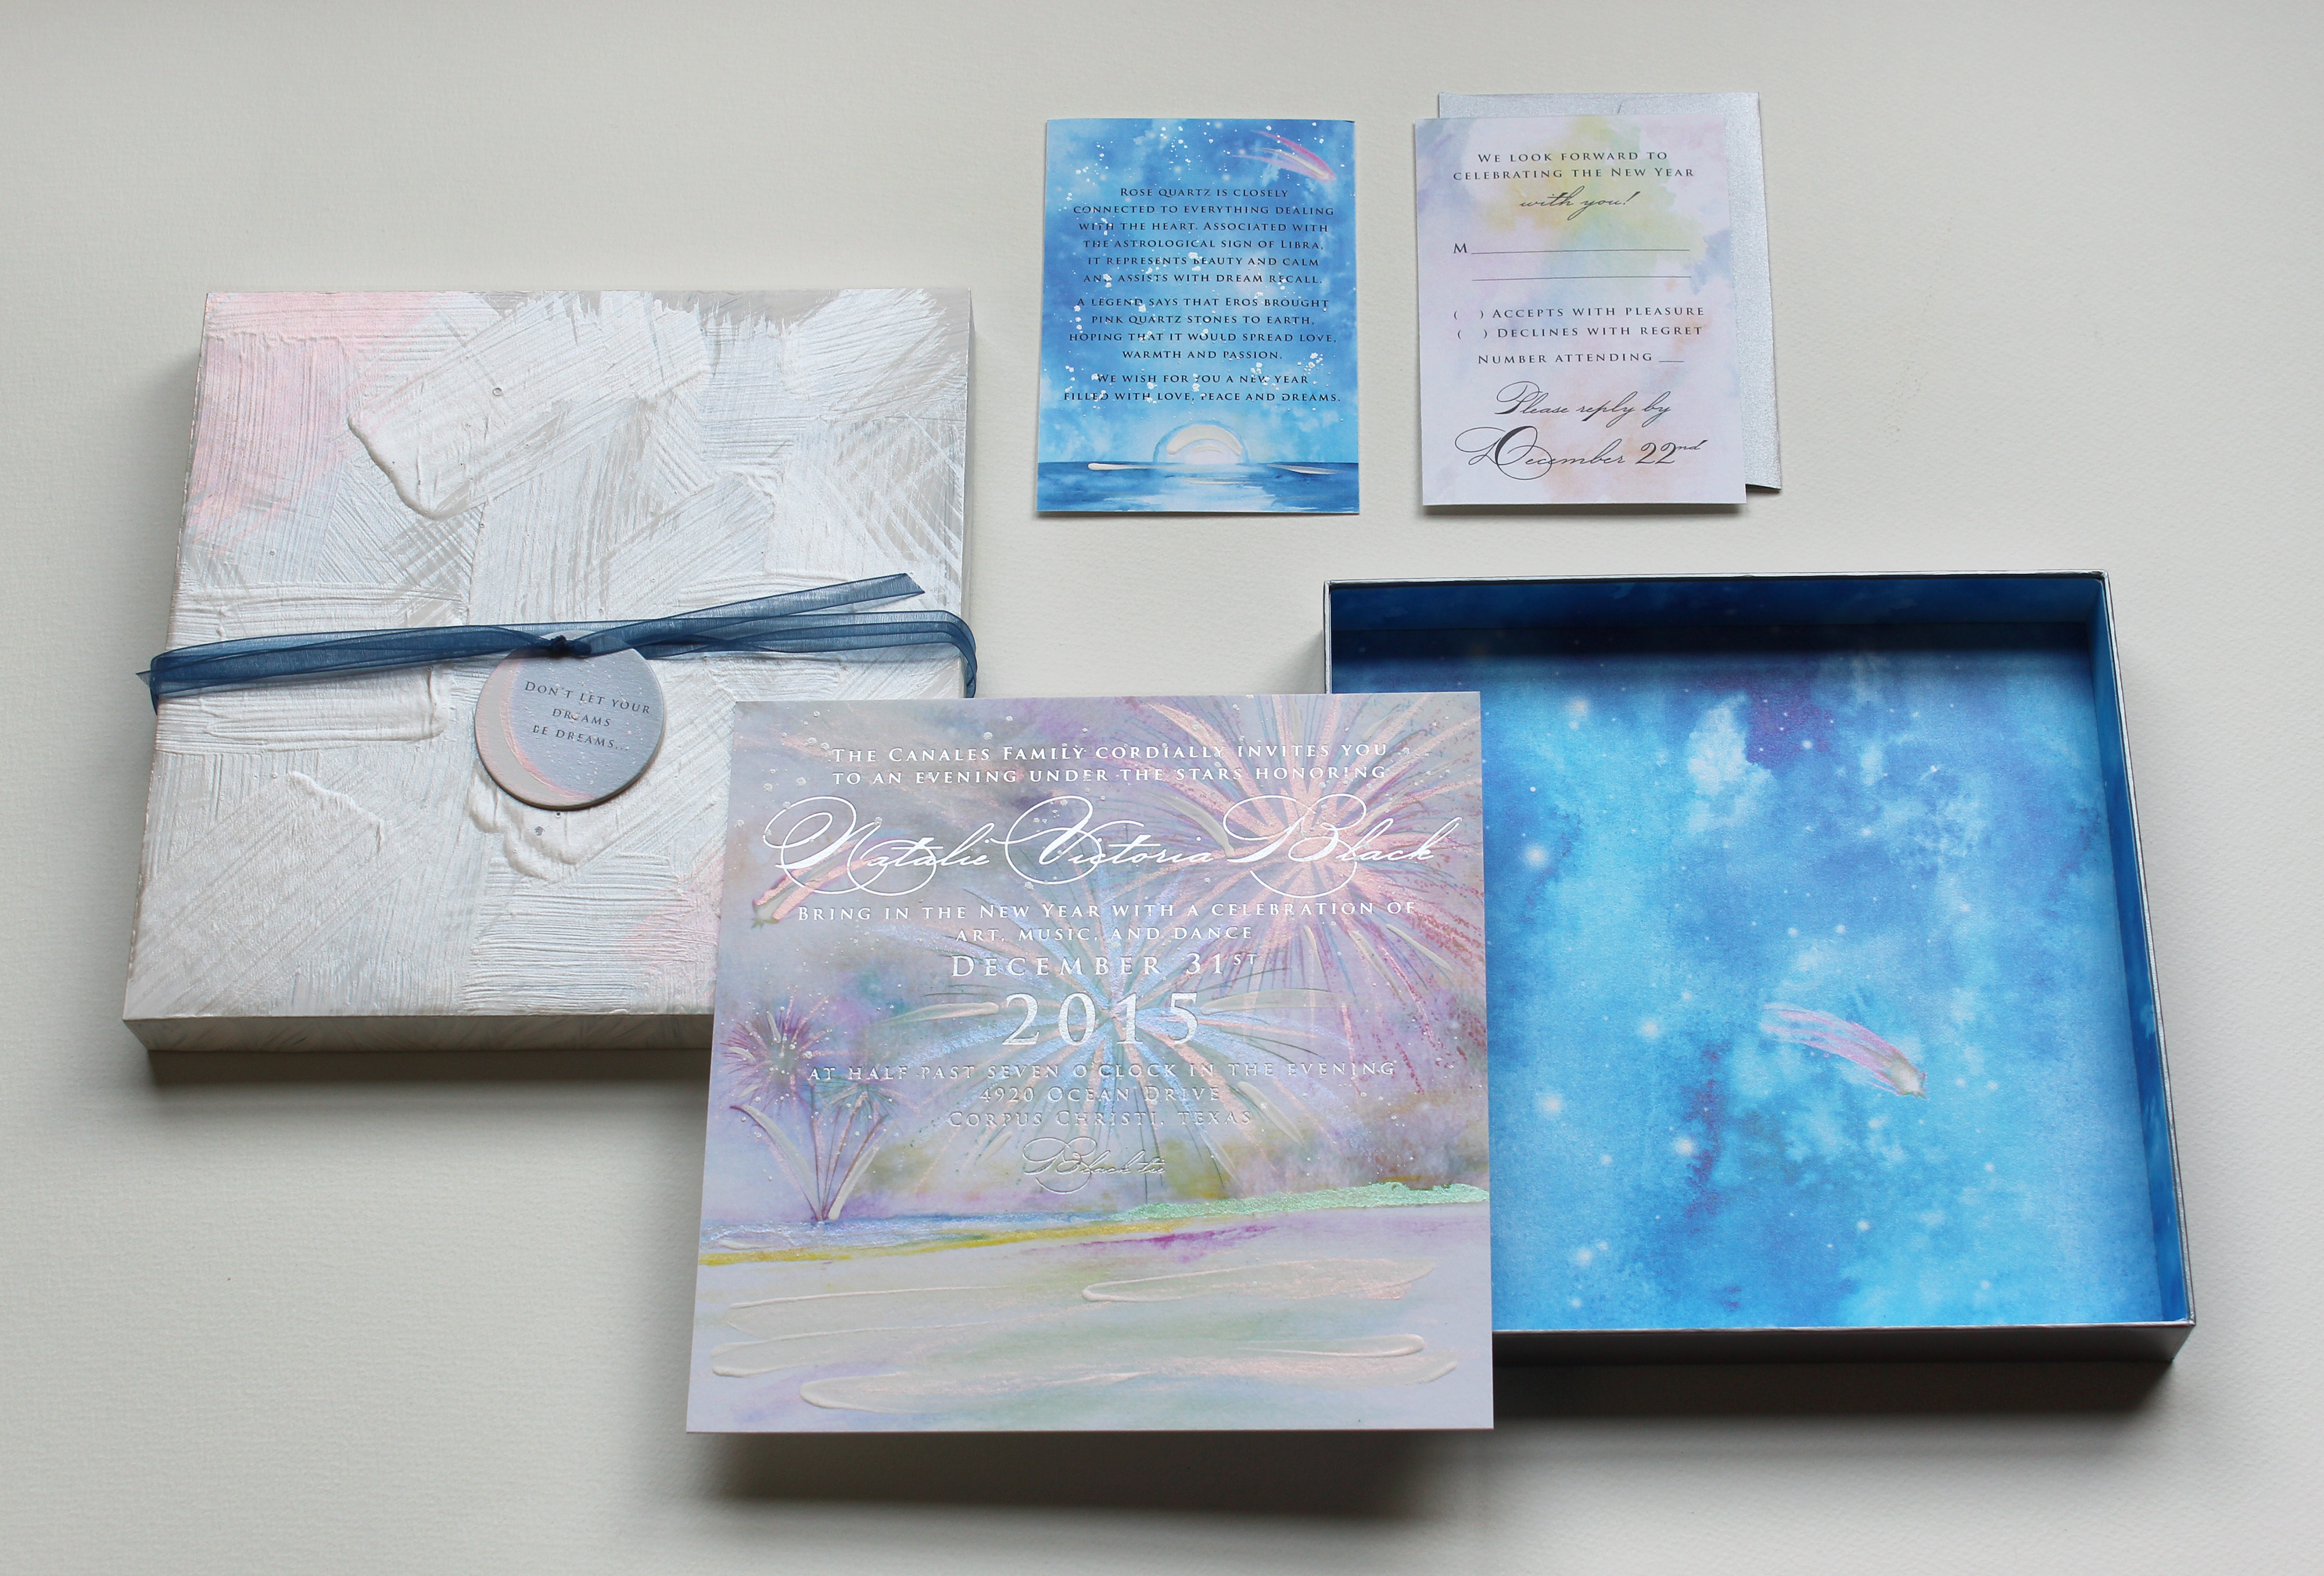 Glamorous celestial New Year's Eve invitation with silver foil and shimmery hand painted details.